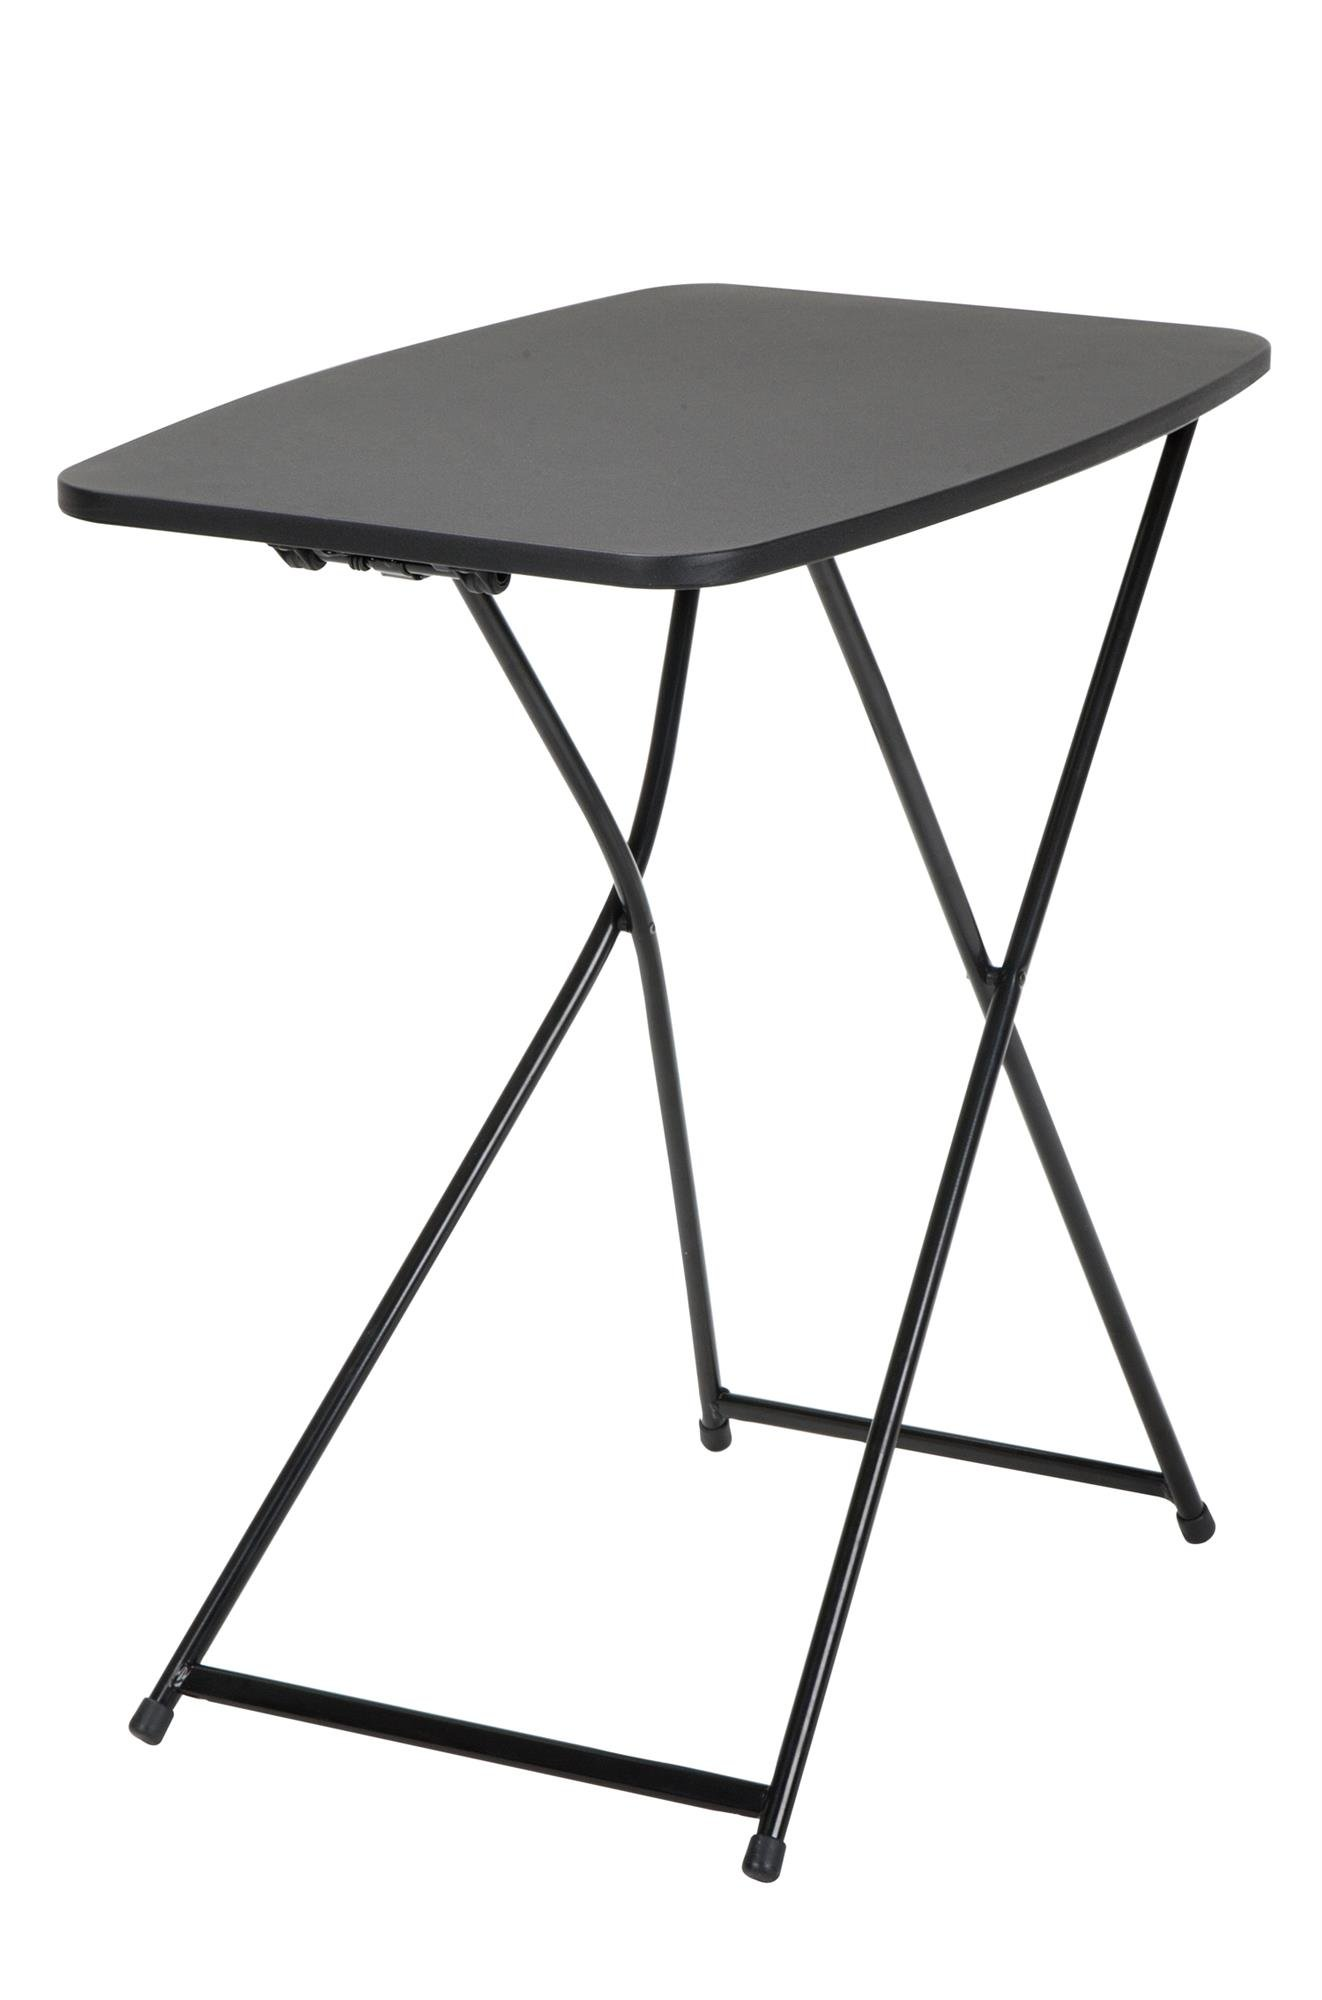 COSCO 18'' x 26'' Indoor Outdoor Adjustable Height Personal Folding Tailgate Table, Black, 2 pack by Cosco Outdoor Living